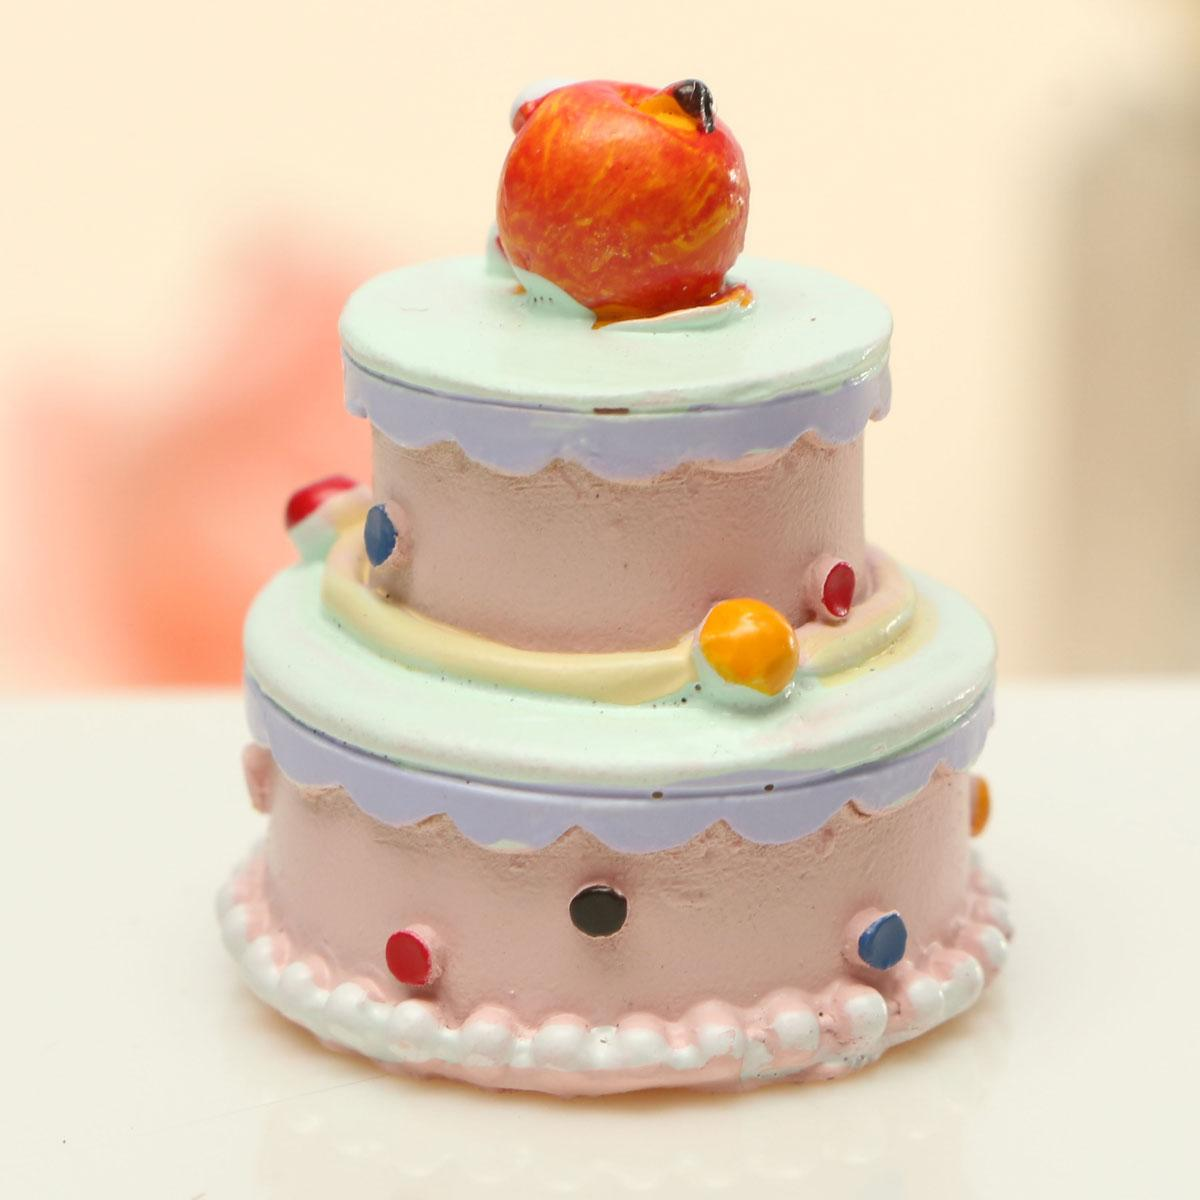 3pcs Cute Diy Doll House Toy Accessories Mini Simulation Food Birthday Cake Ornament Photographing Small Props